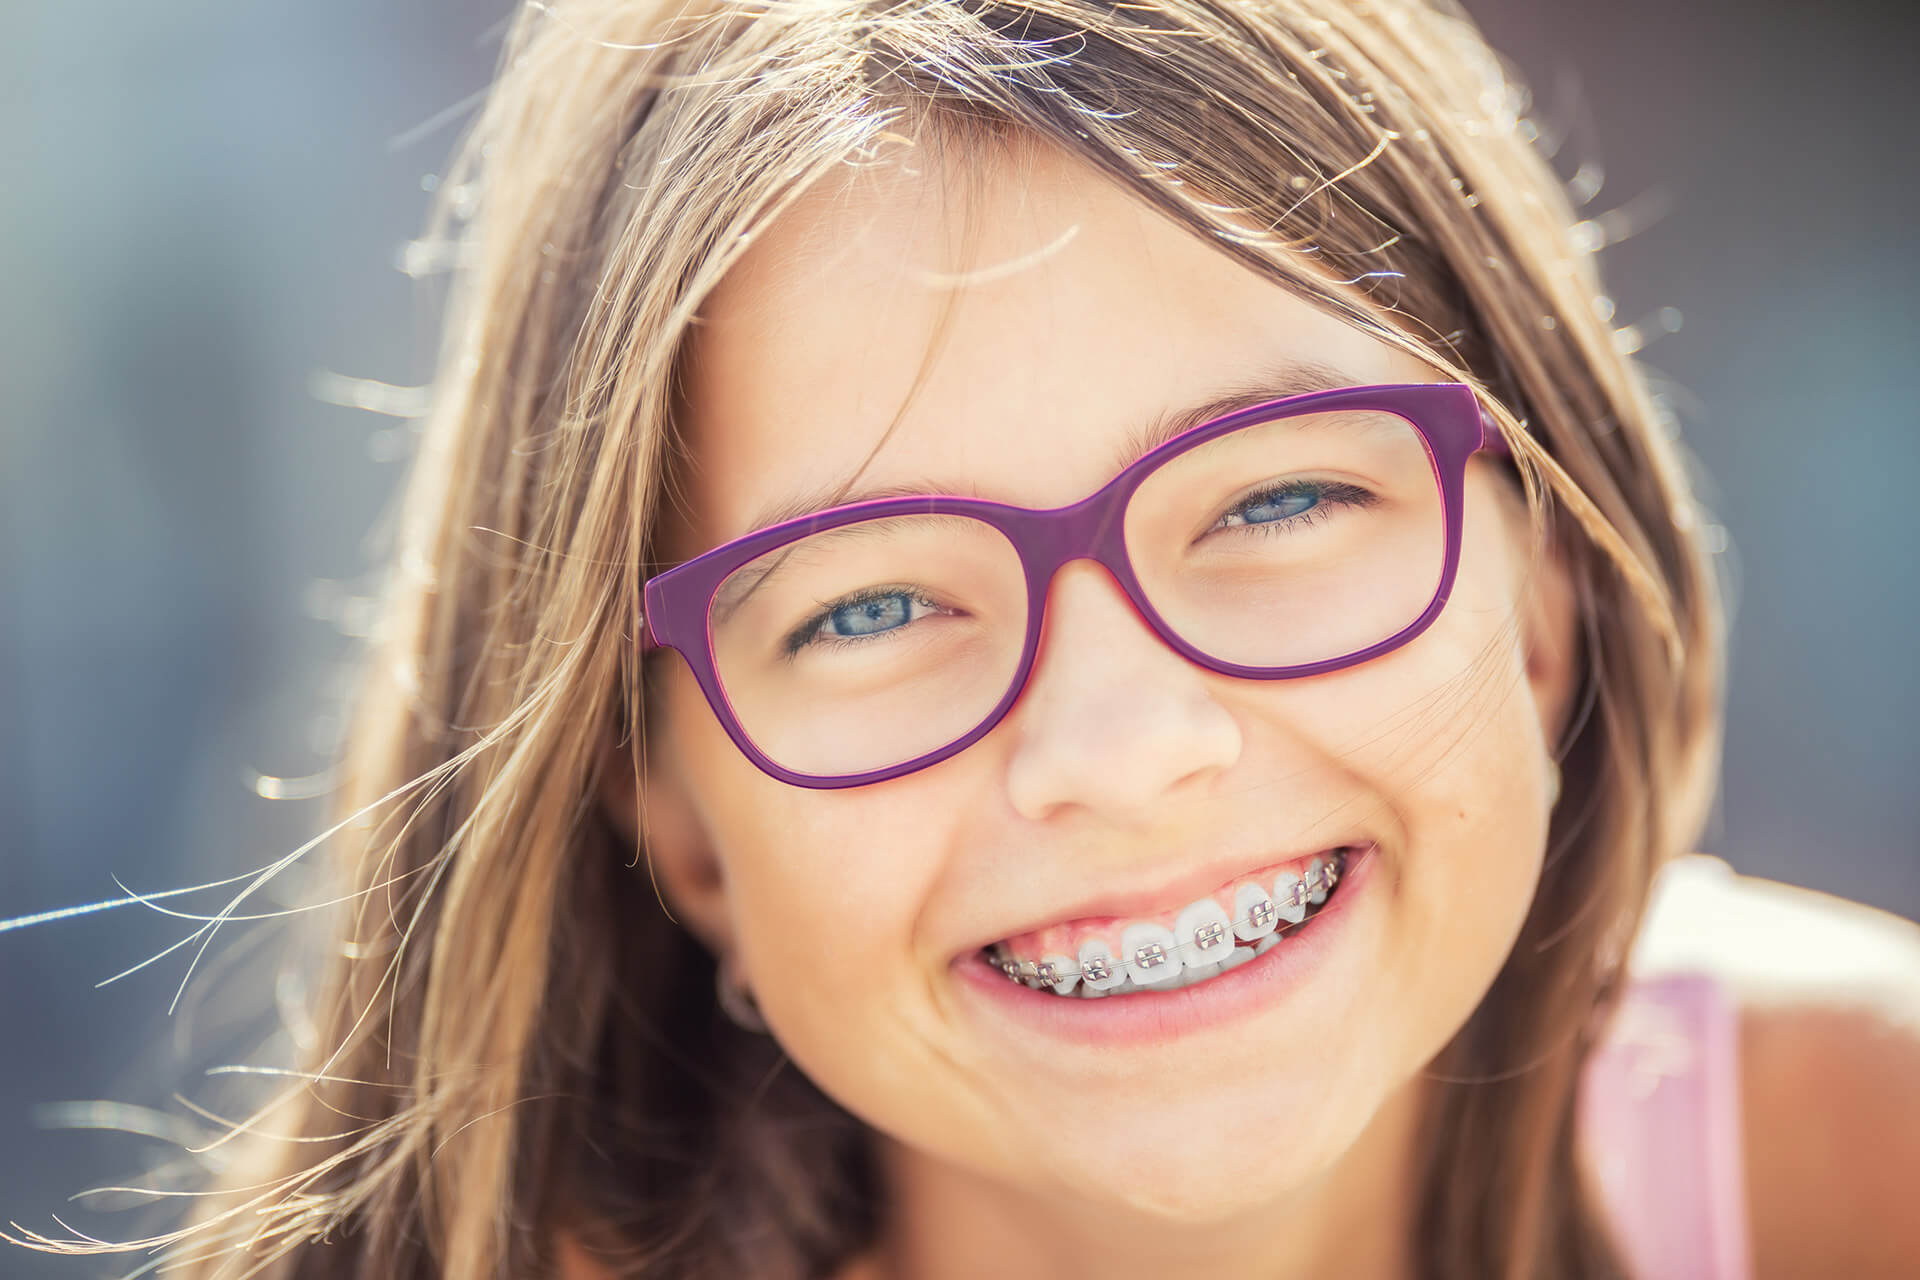 young girl with braces and glasses